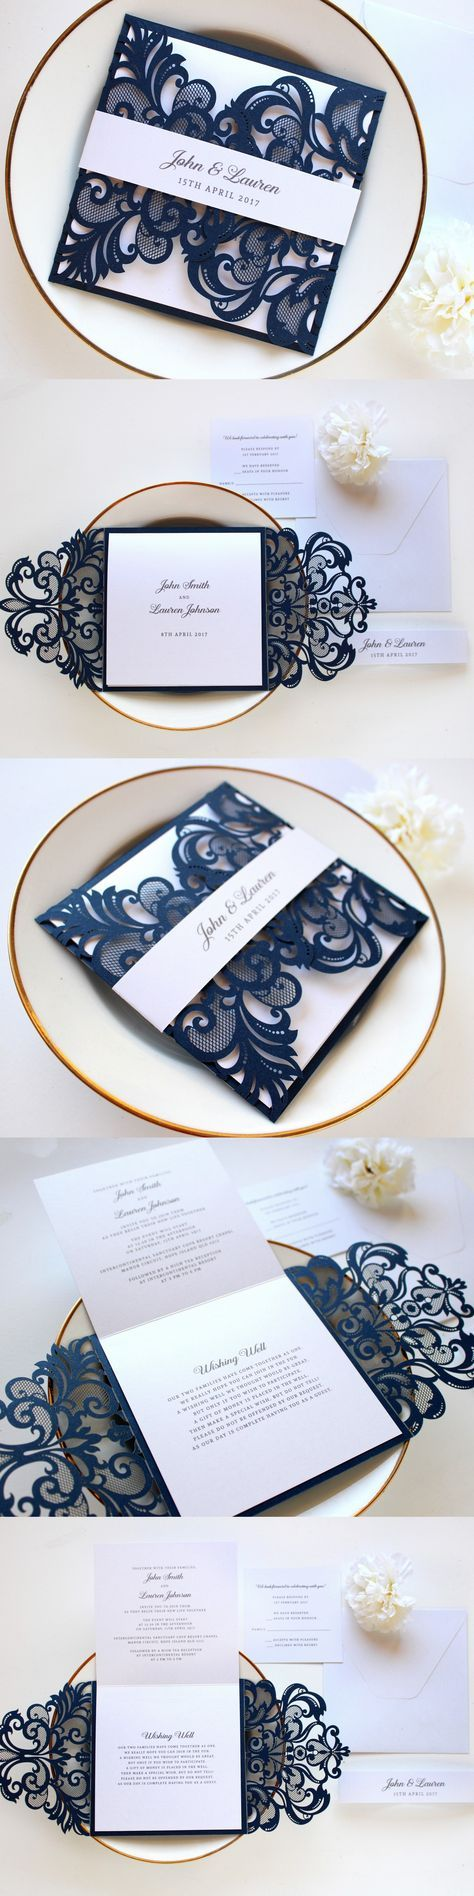 sample wedding invitation letter for uk visa%0A Navy and white laser cut wedding invitation by Paper Bound Love on Etsy